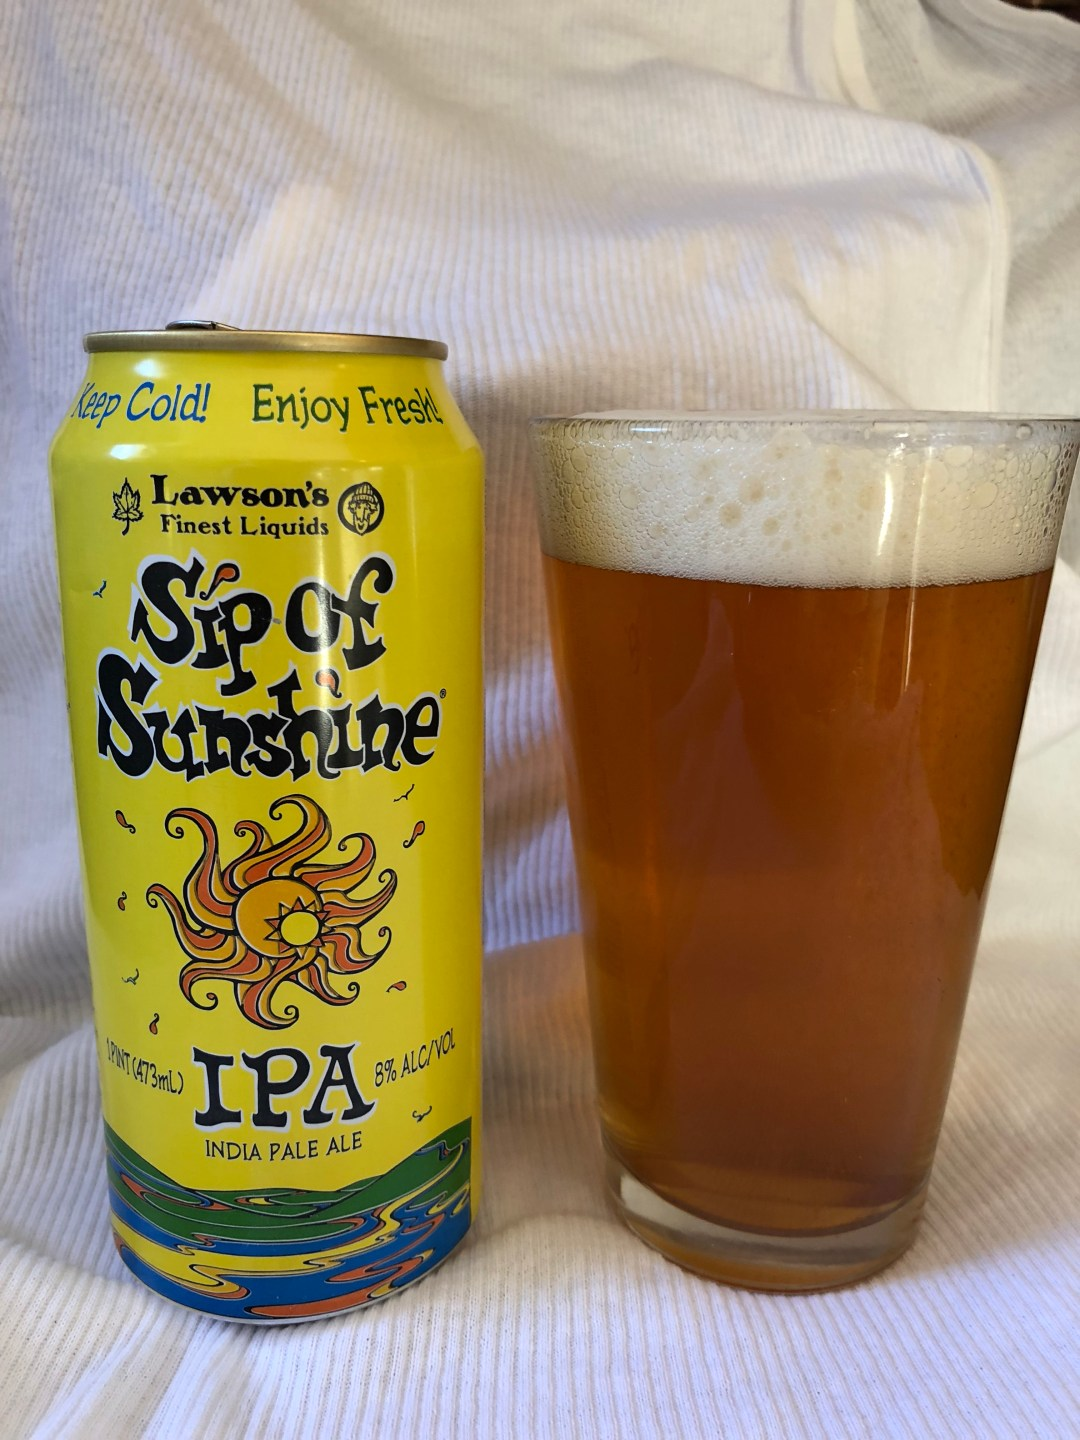 Sip of Sunshine IPA from Lawson's Finest Liquids could easily be a double IPA, with its 8% ABV. But its easy-drinking citrus pour makes for a great IPA!